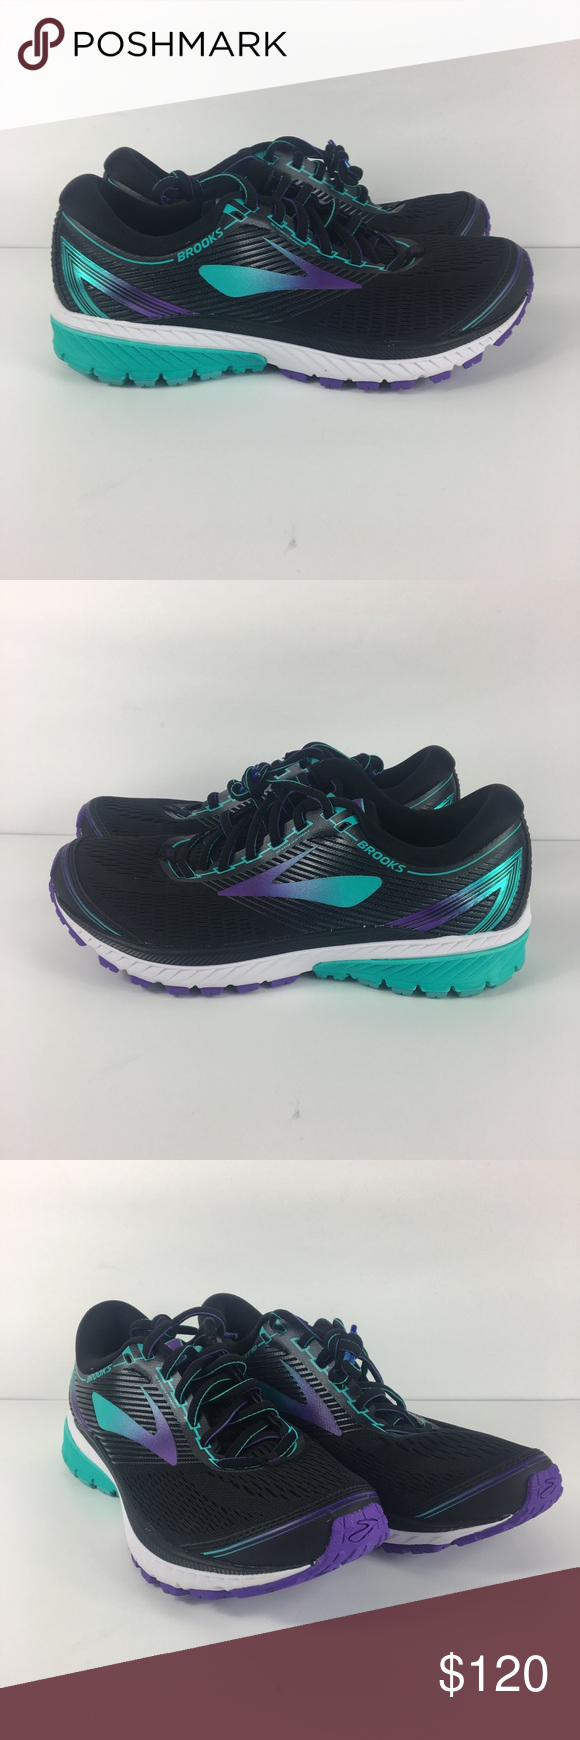 957ea09f811 Brooks Ghost 10 Running Shoes Special Olympics Brooks Ghost 10 Running  Shoes Special Olympics Limited Edition Womens 10.5 New without box R-1 New  Balance ...